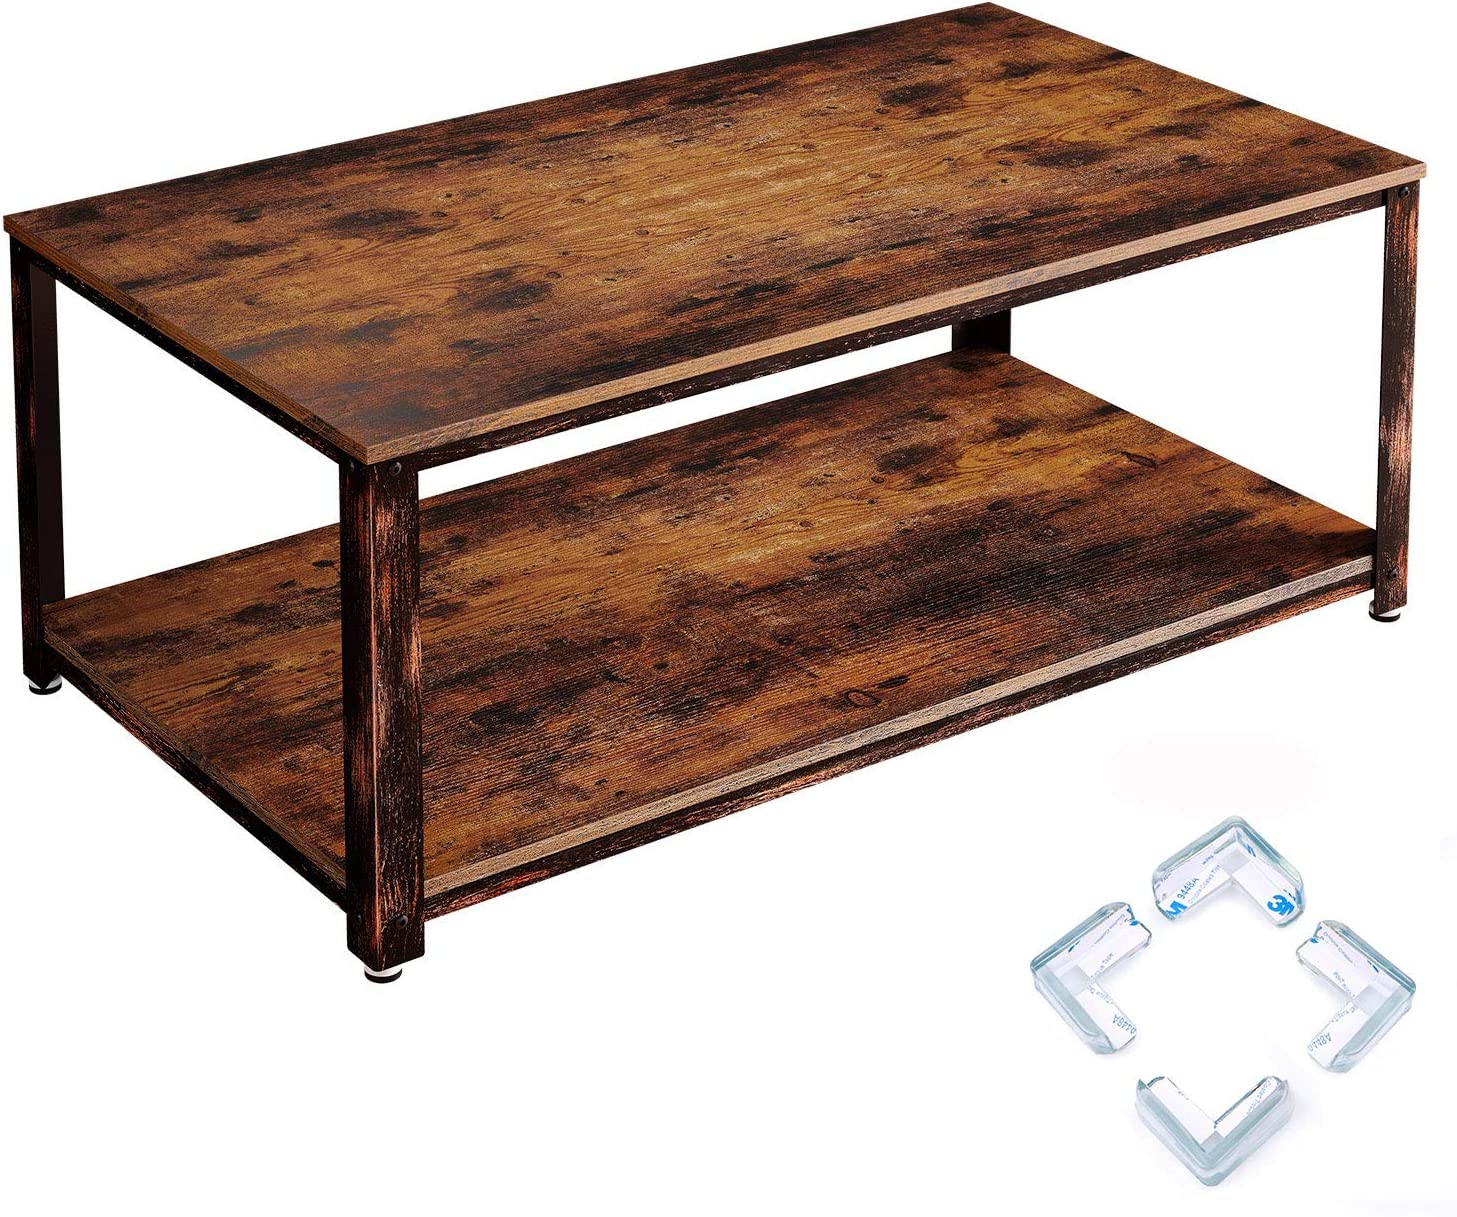 Rolanstar Coffee Table, Rustic Coffee Table with Storage Shelf for Living Room, Wood Look Accent Furniture with Stable Metal Frame Rustic Brown